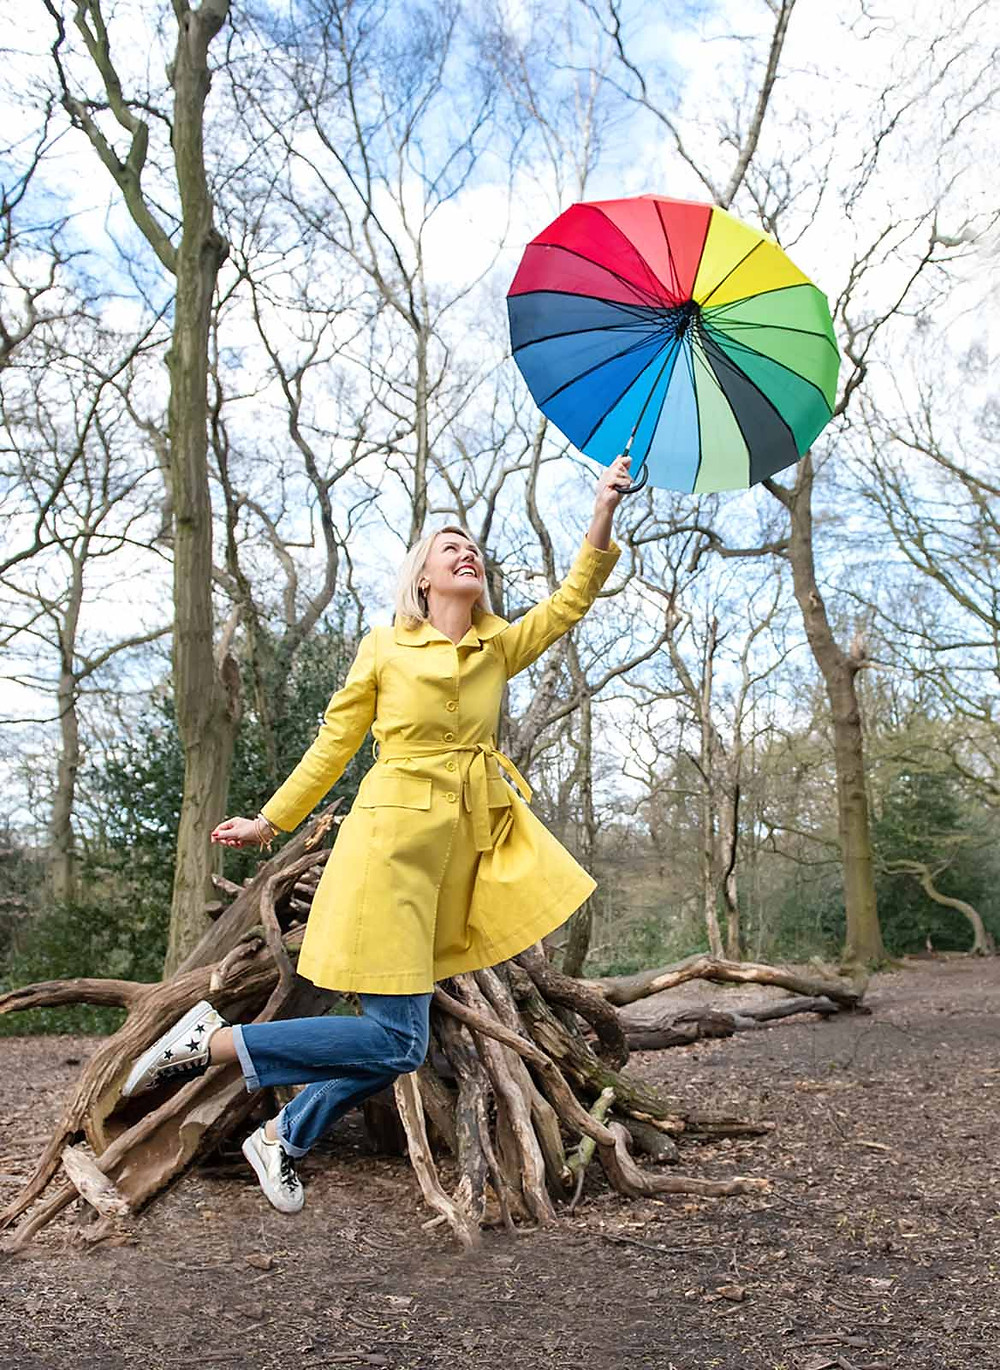 Blonde woman in yellow rain coat, jeans and white shoes. Appears to be floating in the air, holding a rainbow umbrella. Stood in the woods, in front of a homemade den of sticks and logs.